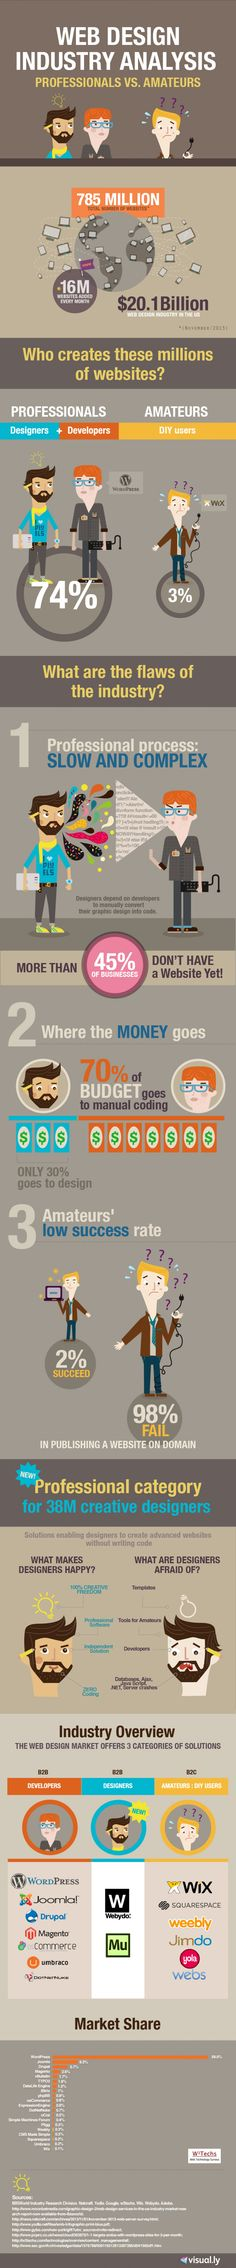 Web Design: Insights And Facts Around The Industry - Infographic